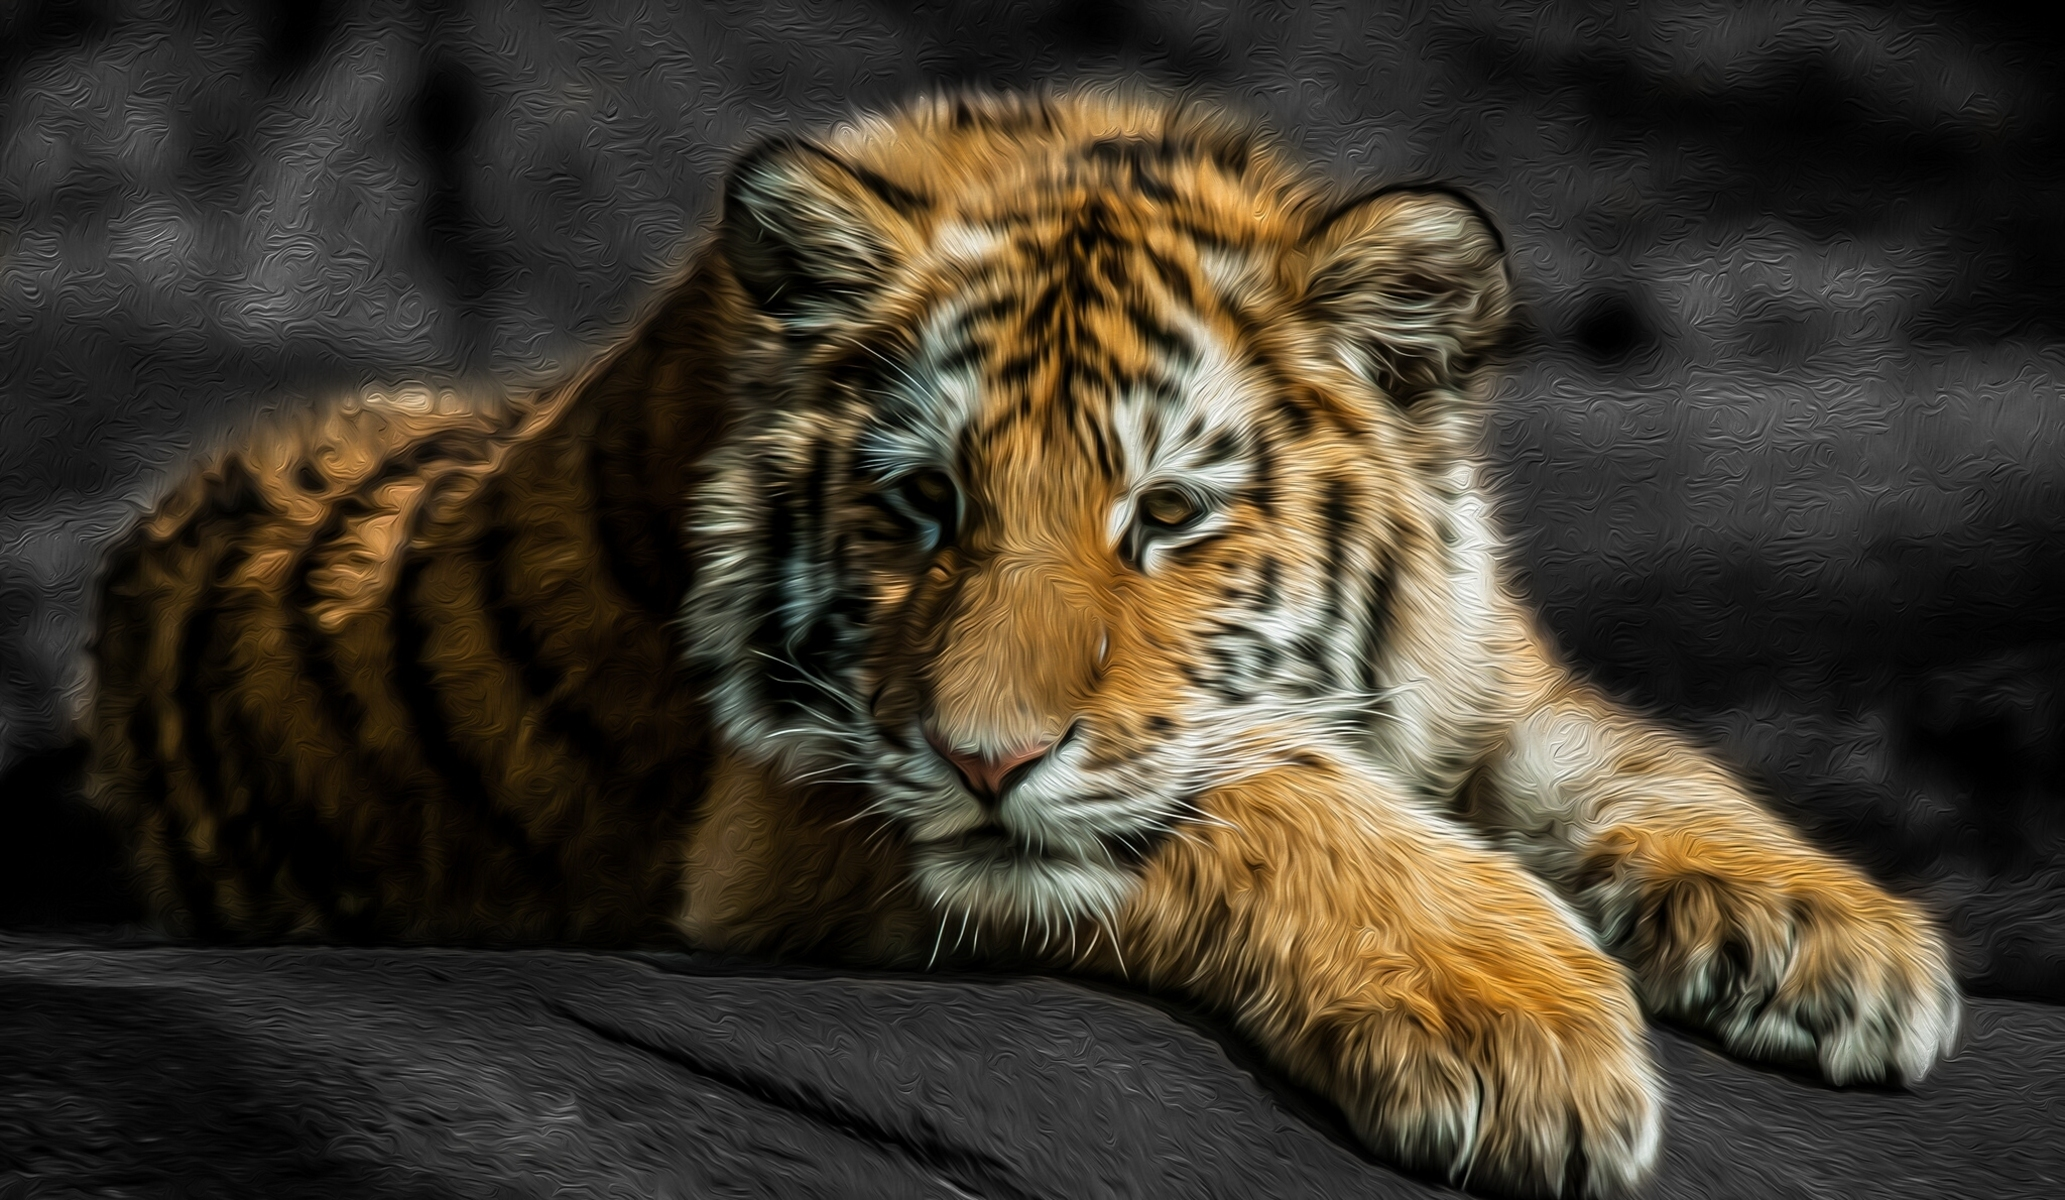 tiger wallpaper abstract HD